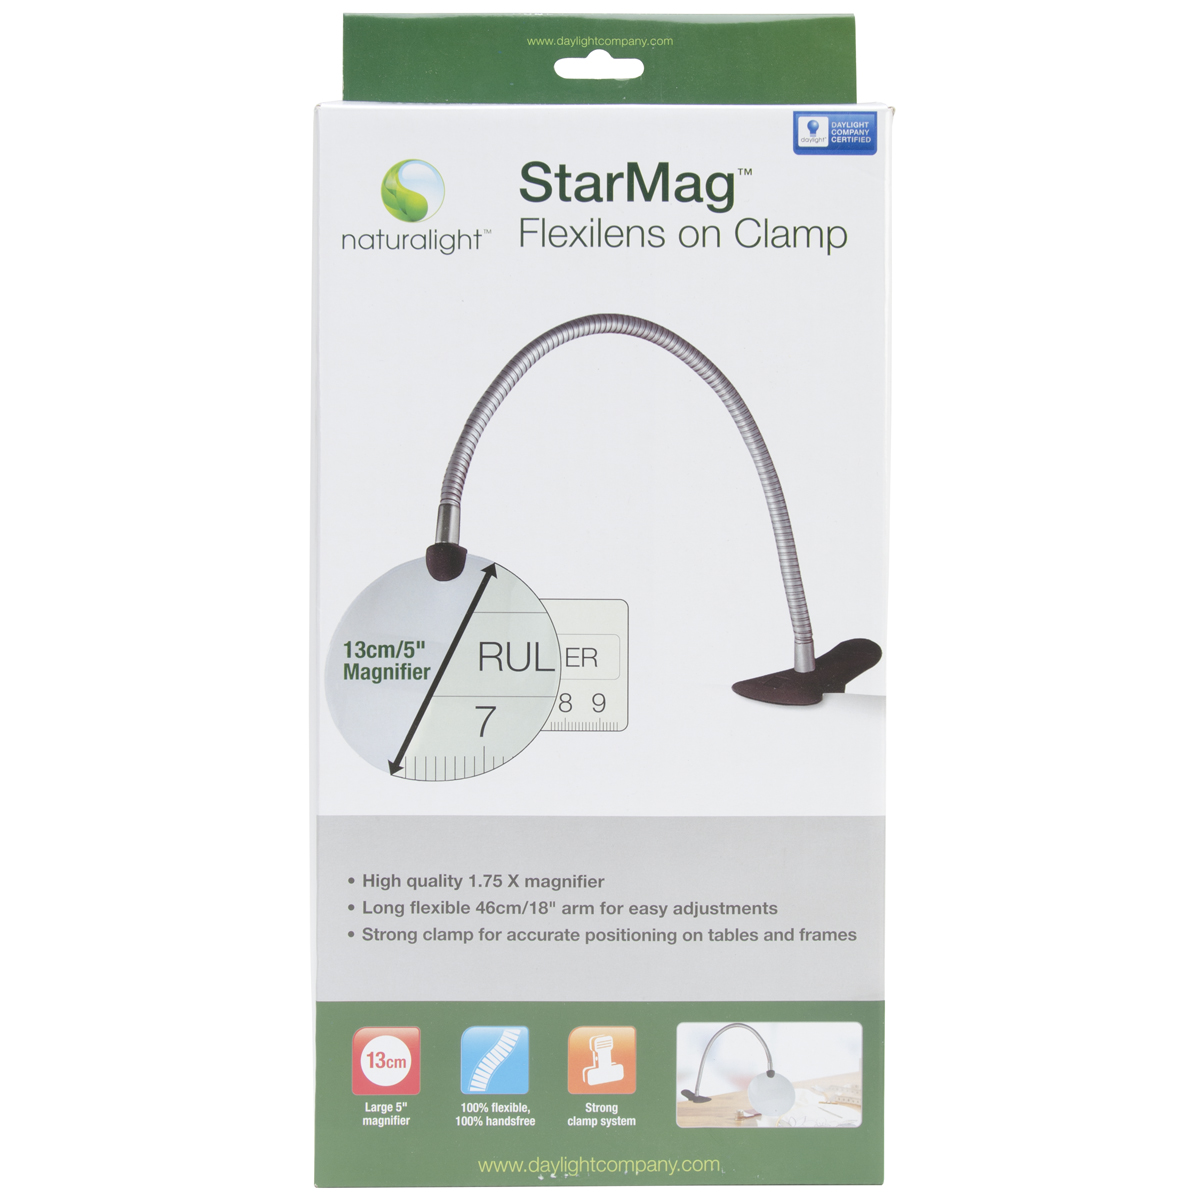 "Daylight Naturalight StarMag Flexilens On Clamp, 18"", White"